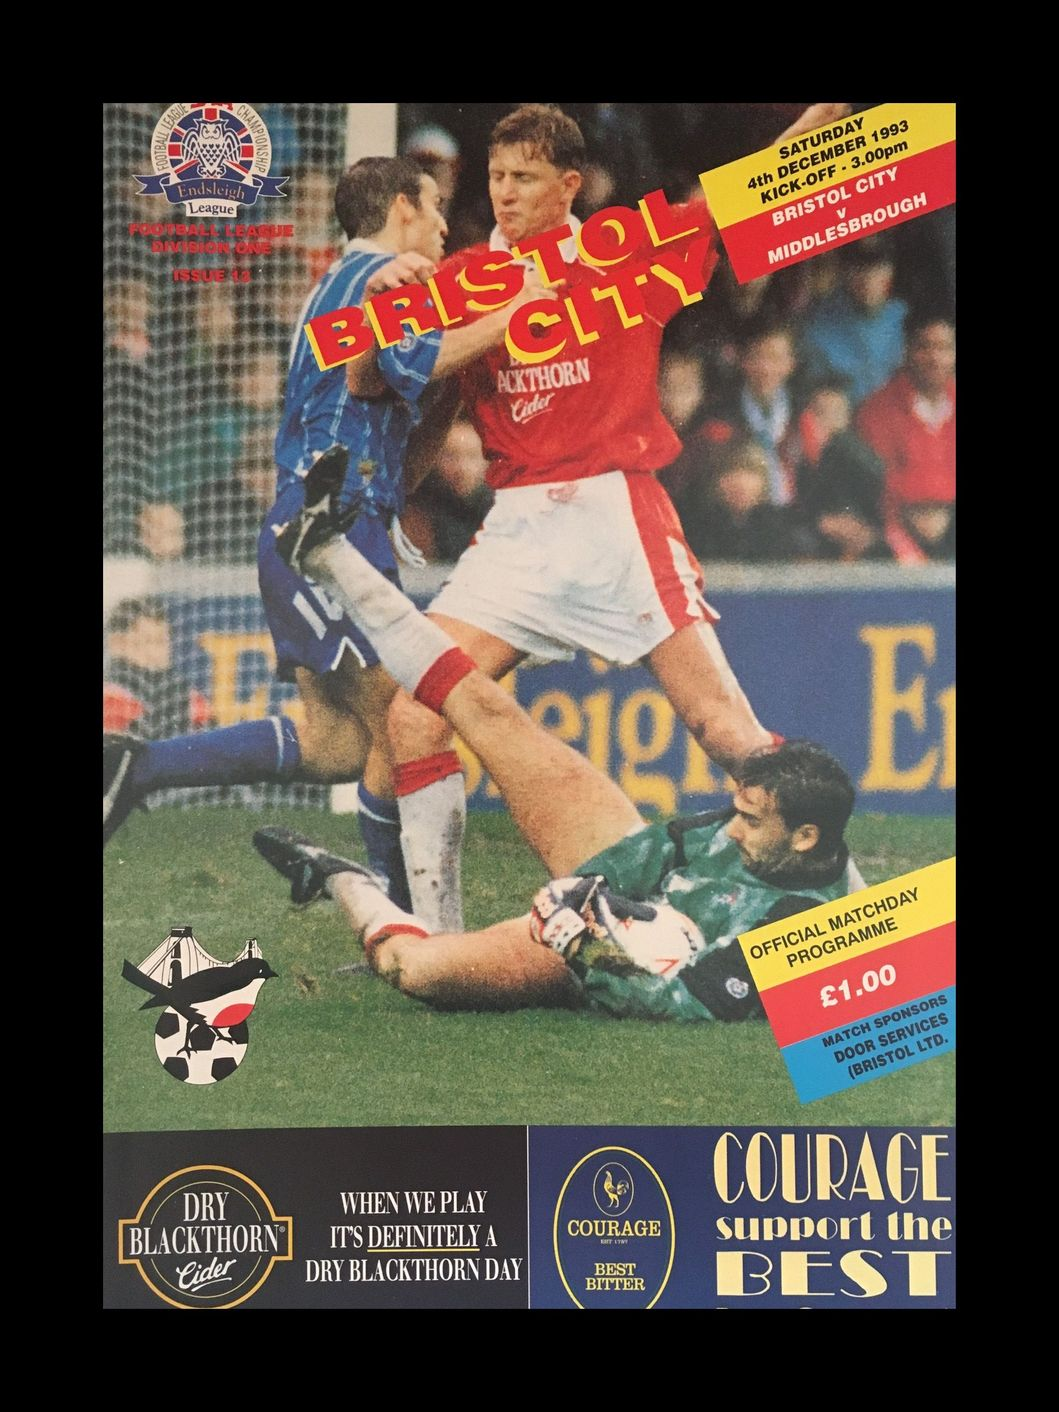 Bristol City v Middlesbrough 04-12-1993 Programme